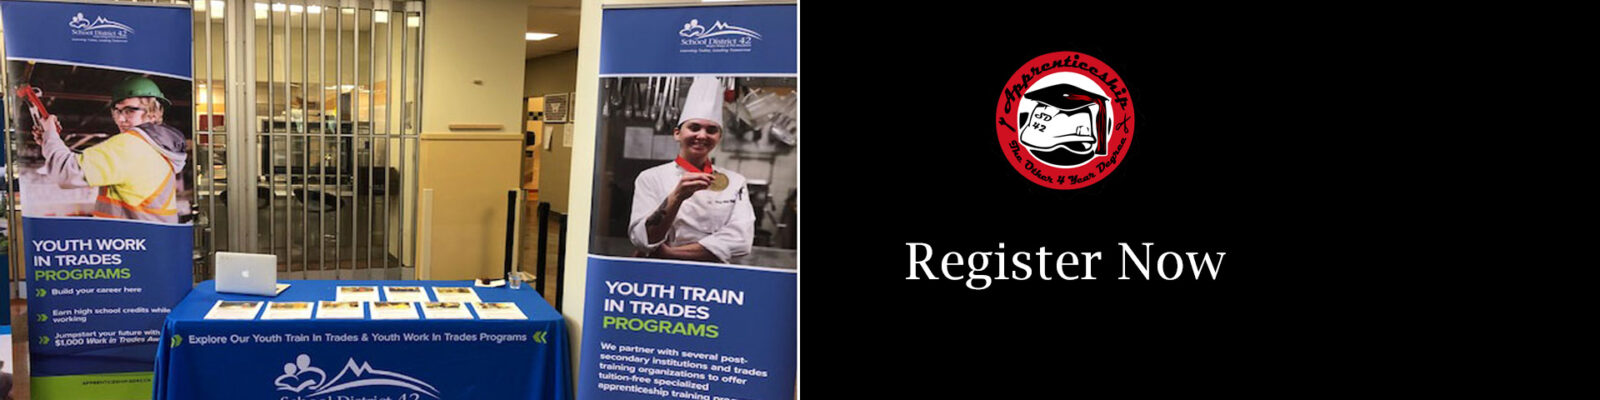 2021 Virtual Trades Information Sessions